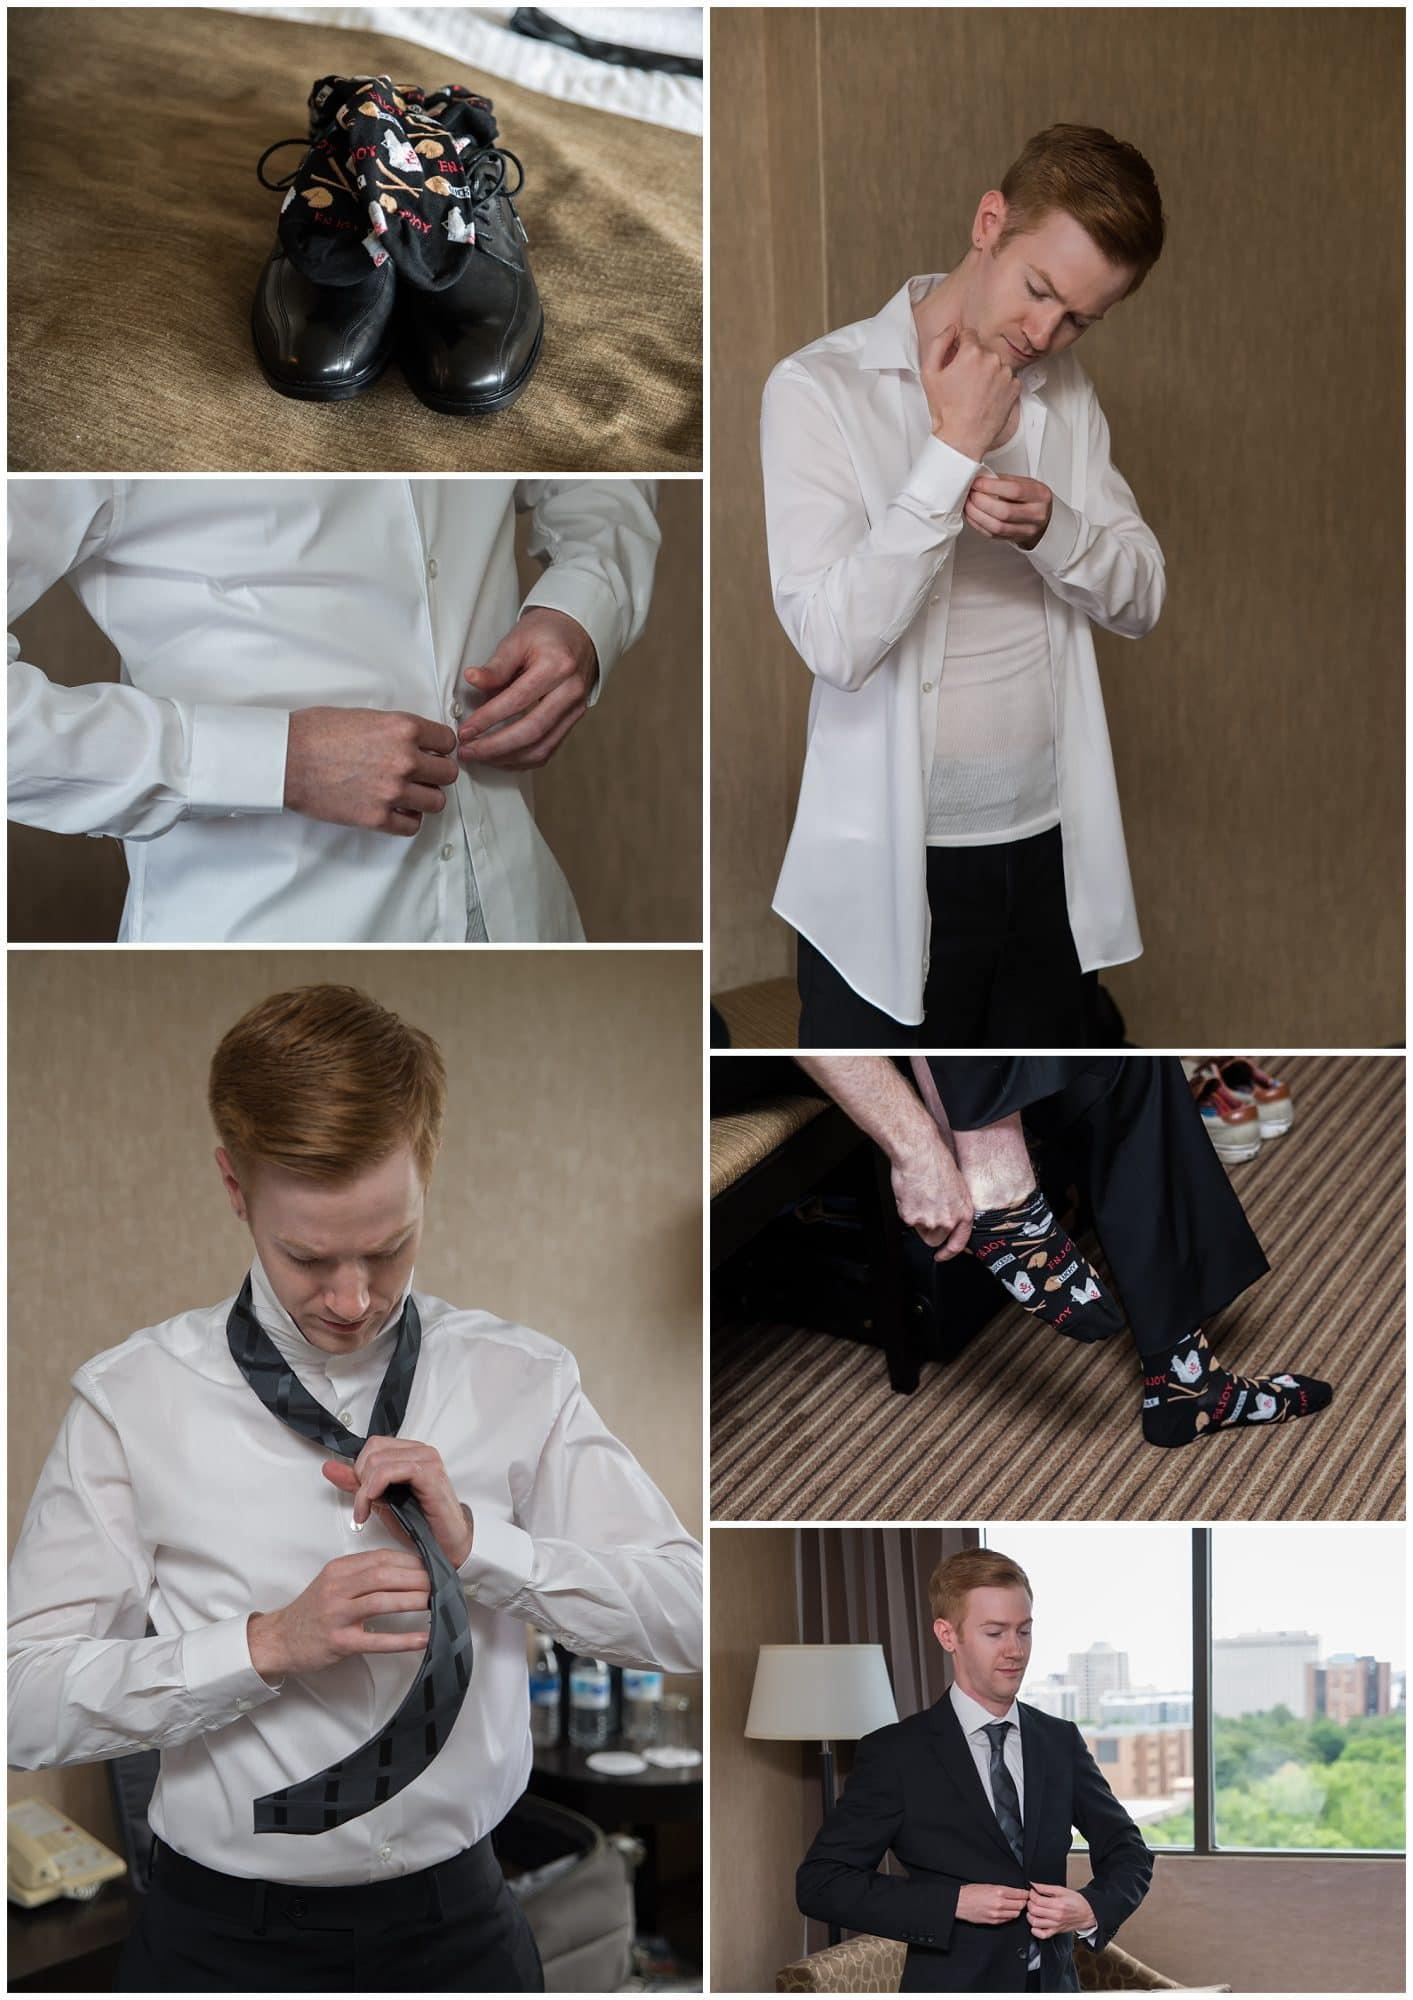 The groom getting ready for his wedding day at the Atlantica Hotel in Halifax. NS.